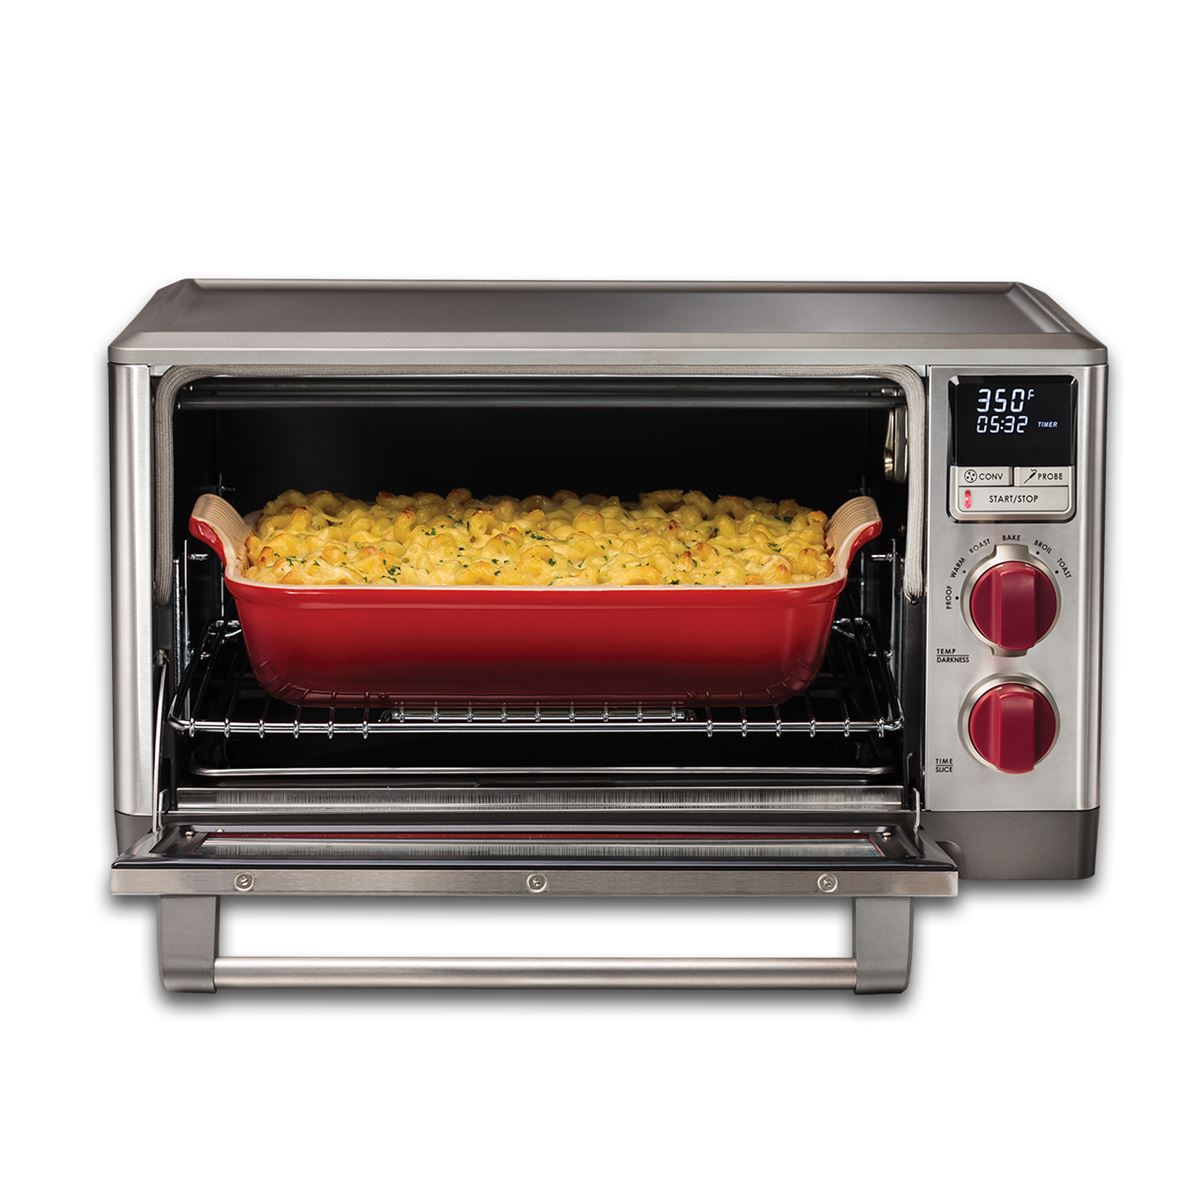 rhco rosewill qt countertop to halogen p oven convection ovens white